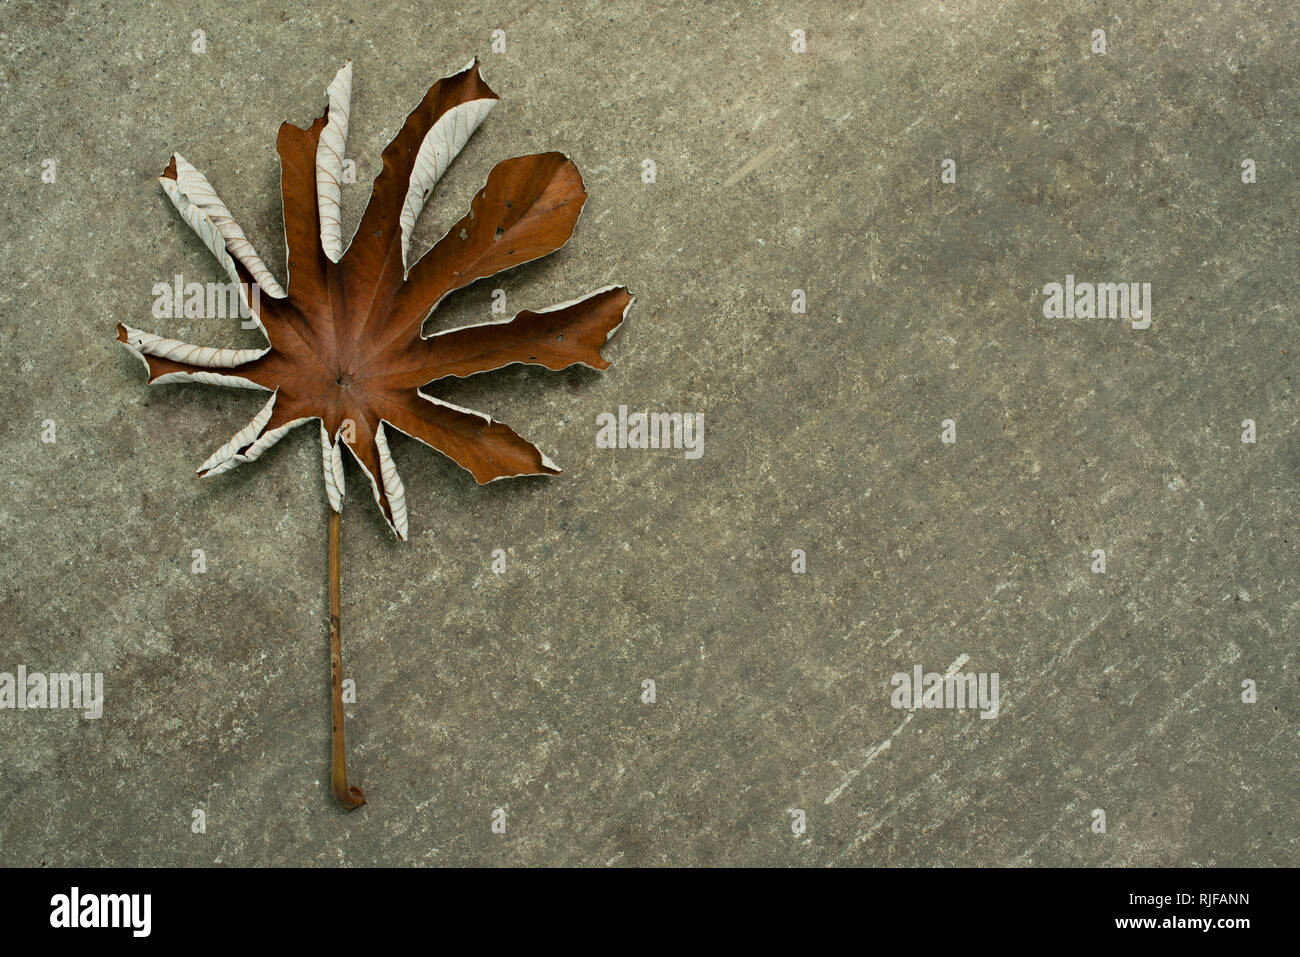 Fallen decayed tree leaf against concrete, neutral background. Autumn concept with copy space. RF, Tayrona Park, Colombia - Stock Image